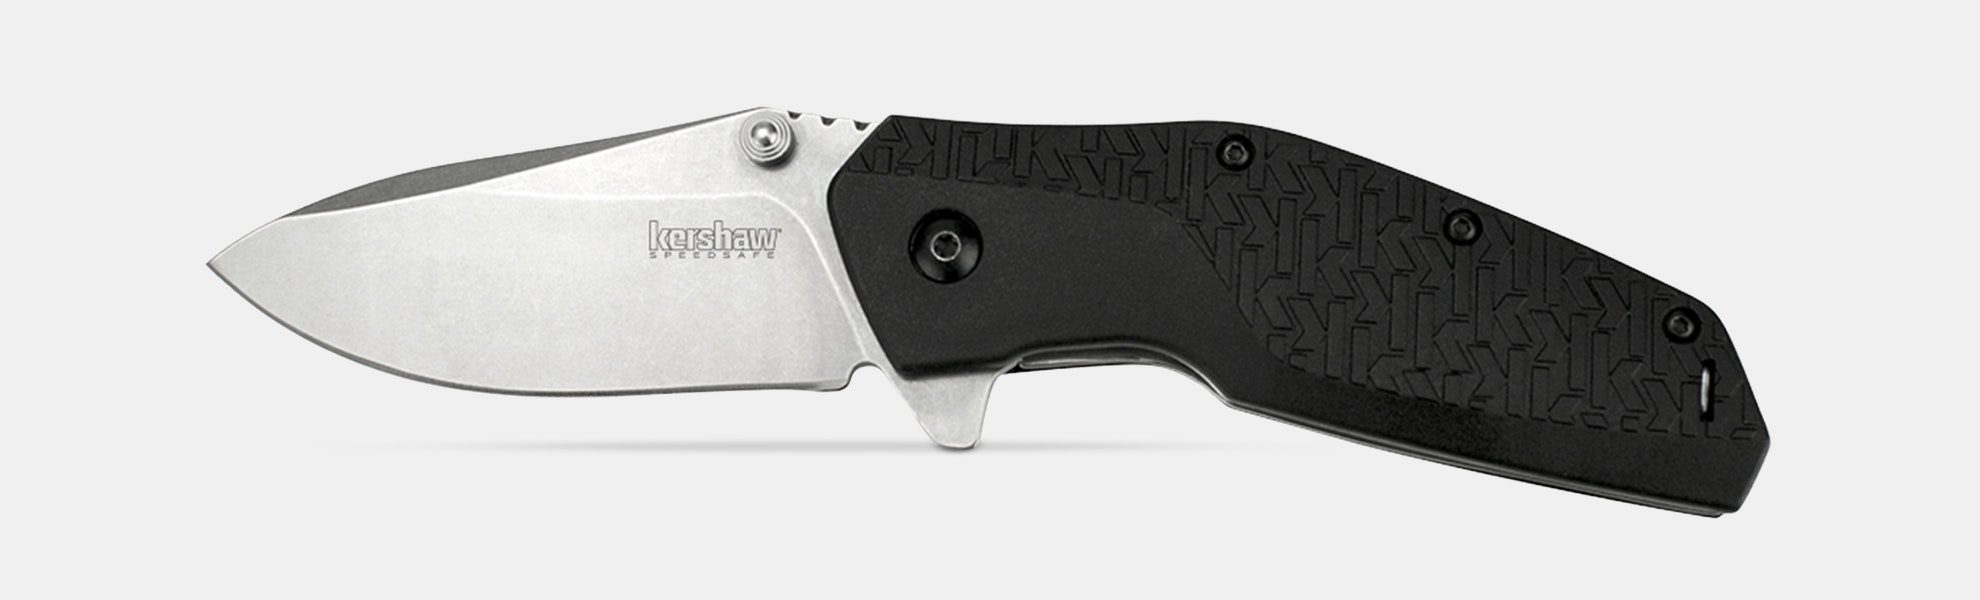 Kershaw Swerve Knife With SpeedSafe